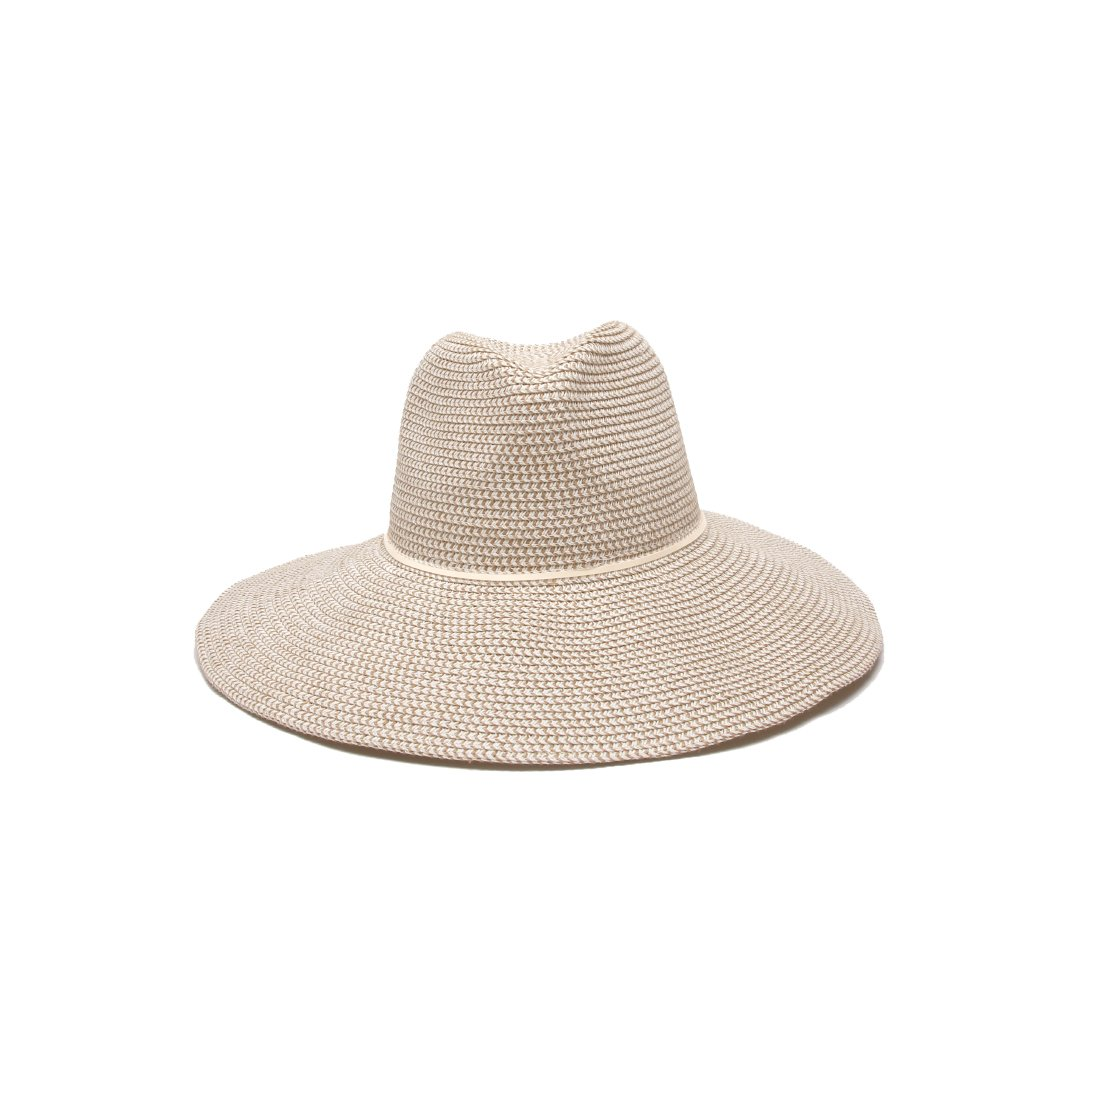 'ale by alessandra Women's Sancho Adjustable Toyo Hat with Leather Trim, White Tweed, Adjustable Head Size